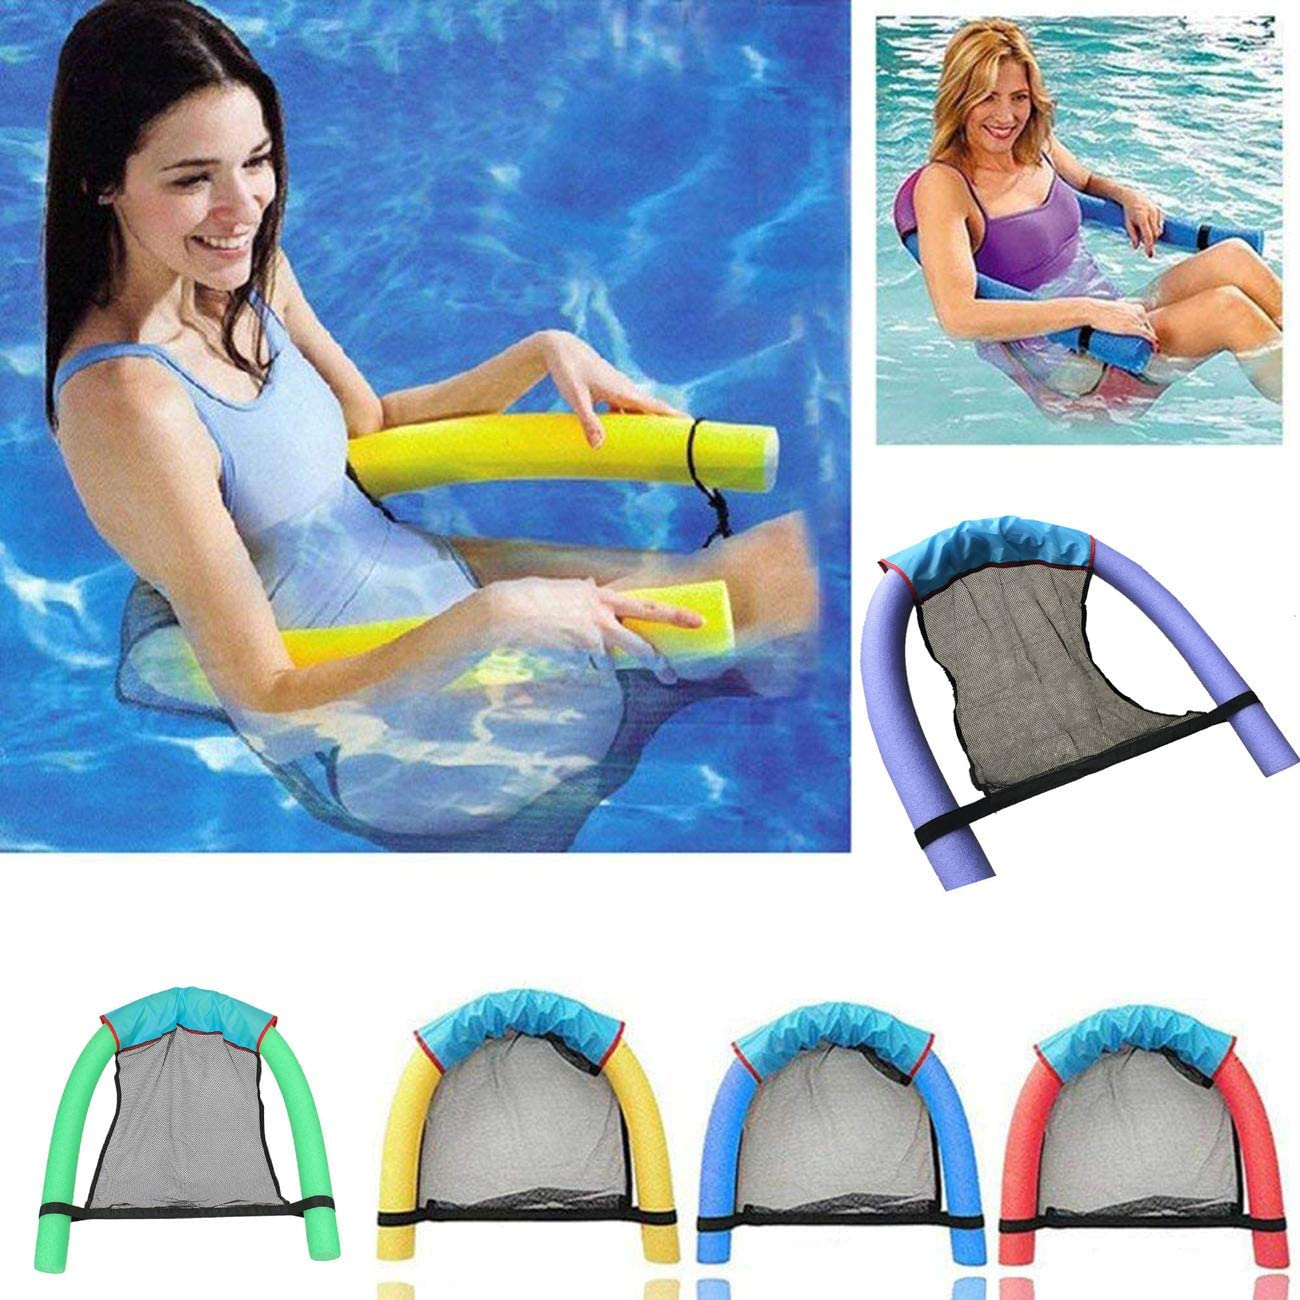 Floating Noodle Sling Mesh Chair Pool Swim Seat Hammock Swimming Accessories NEW